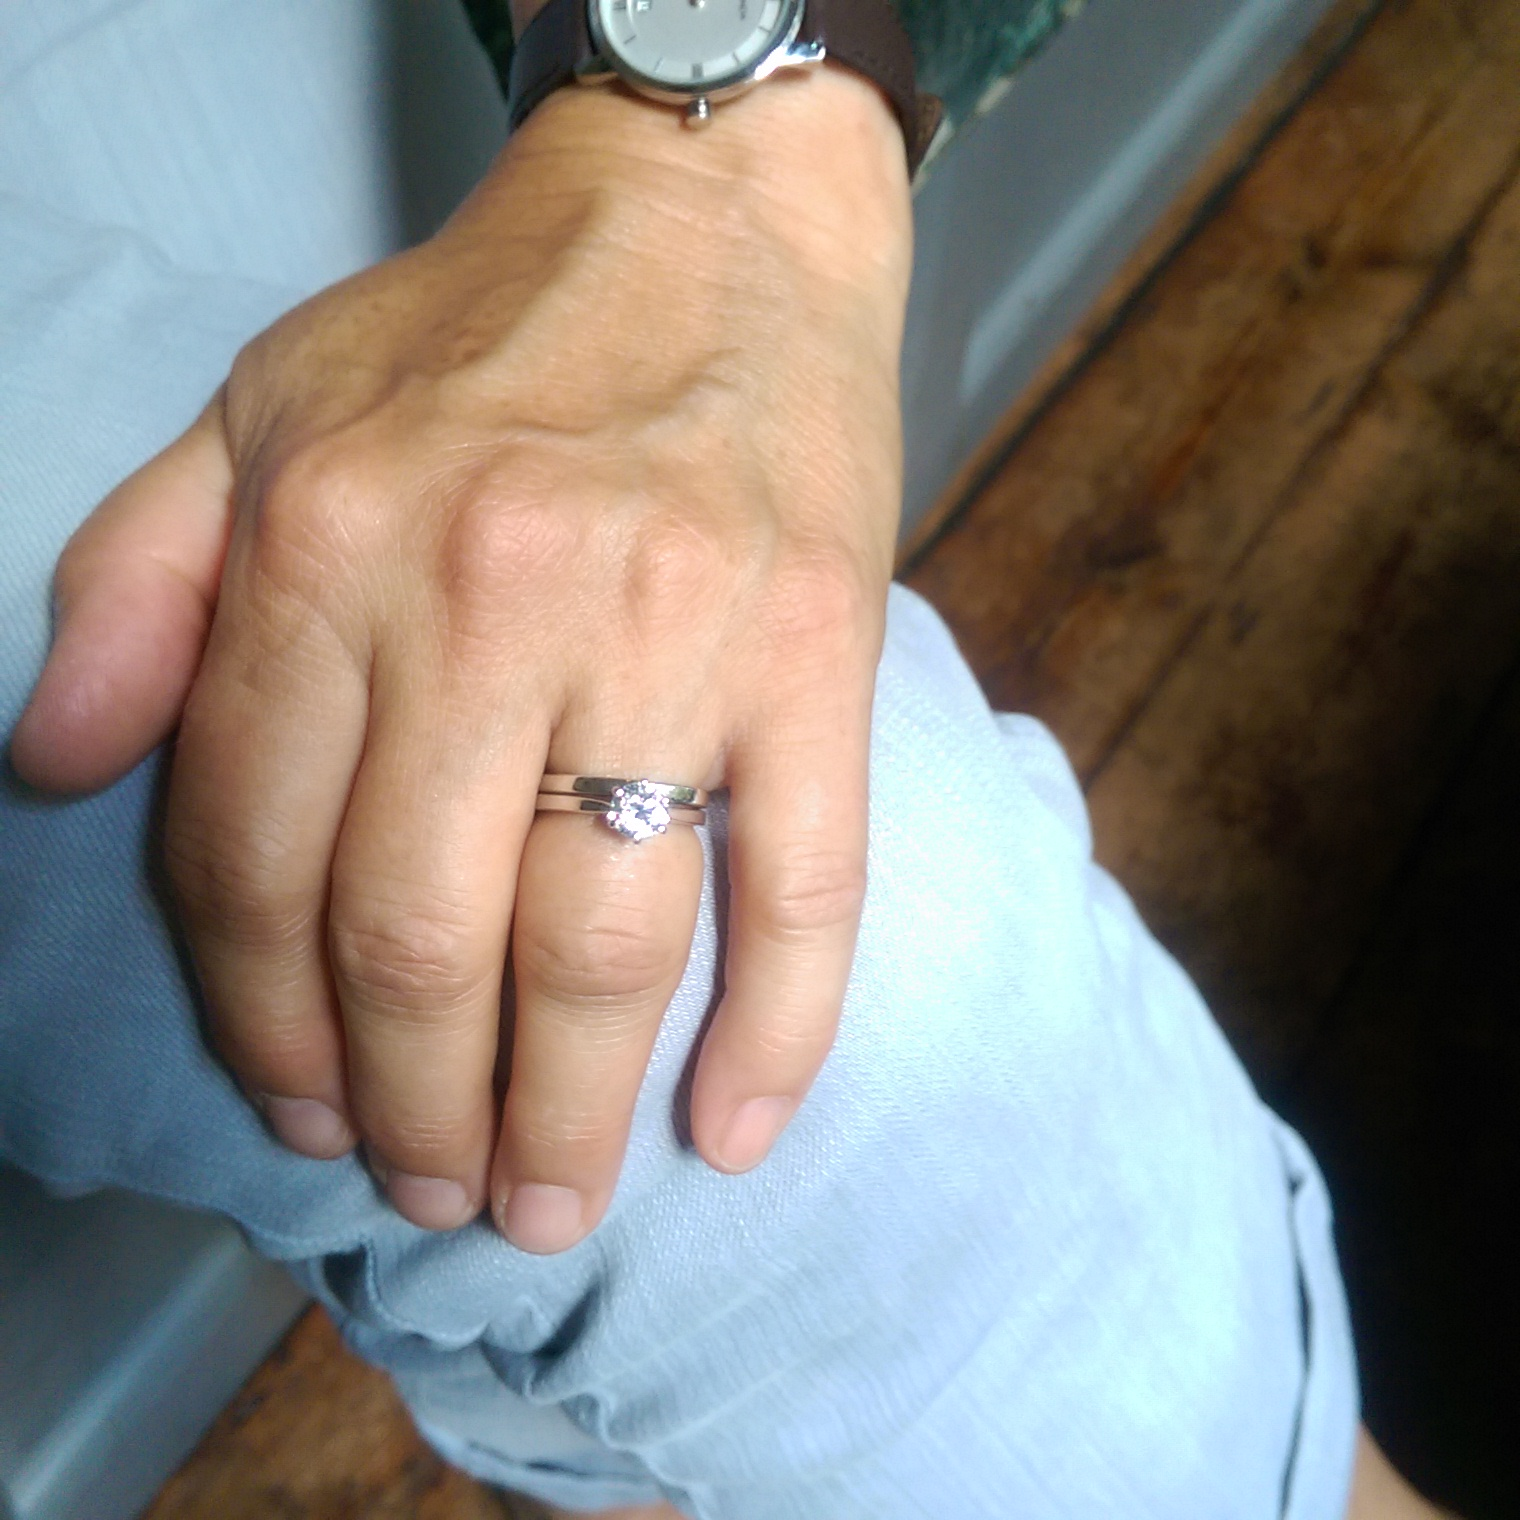 Finished trapezoid shaped engagement wedding and engagement ring on client hand.